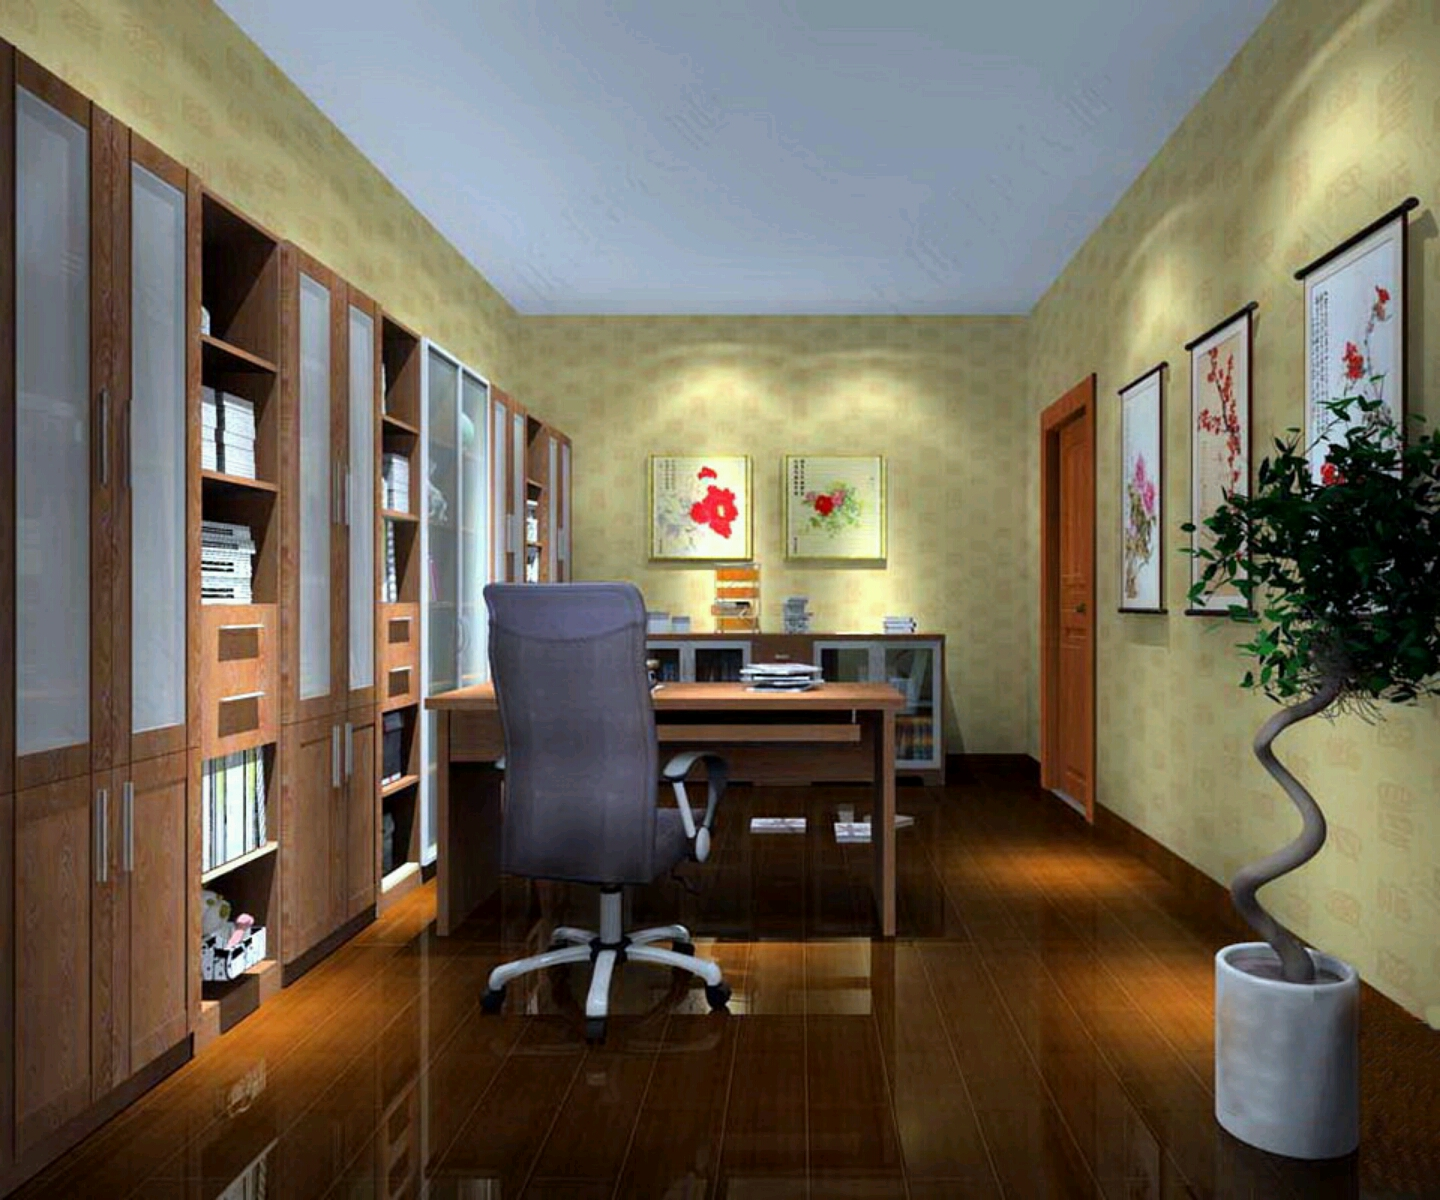 Study furniture designs ideas furniture gallery Home study furniture design